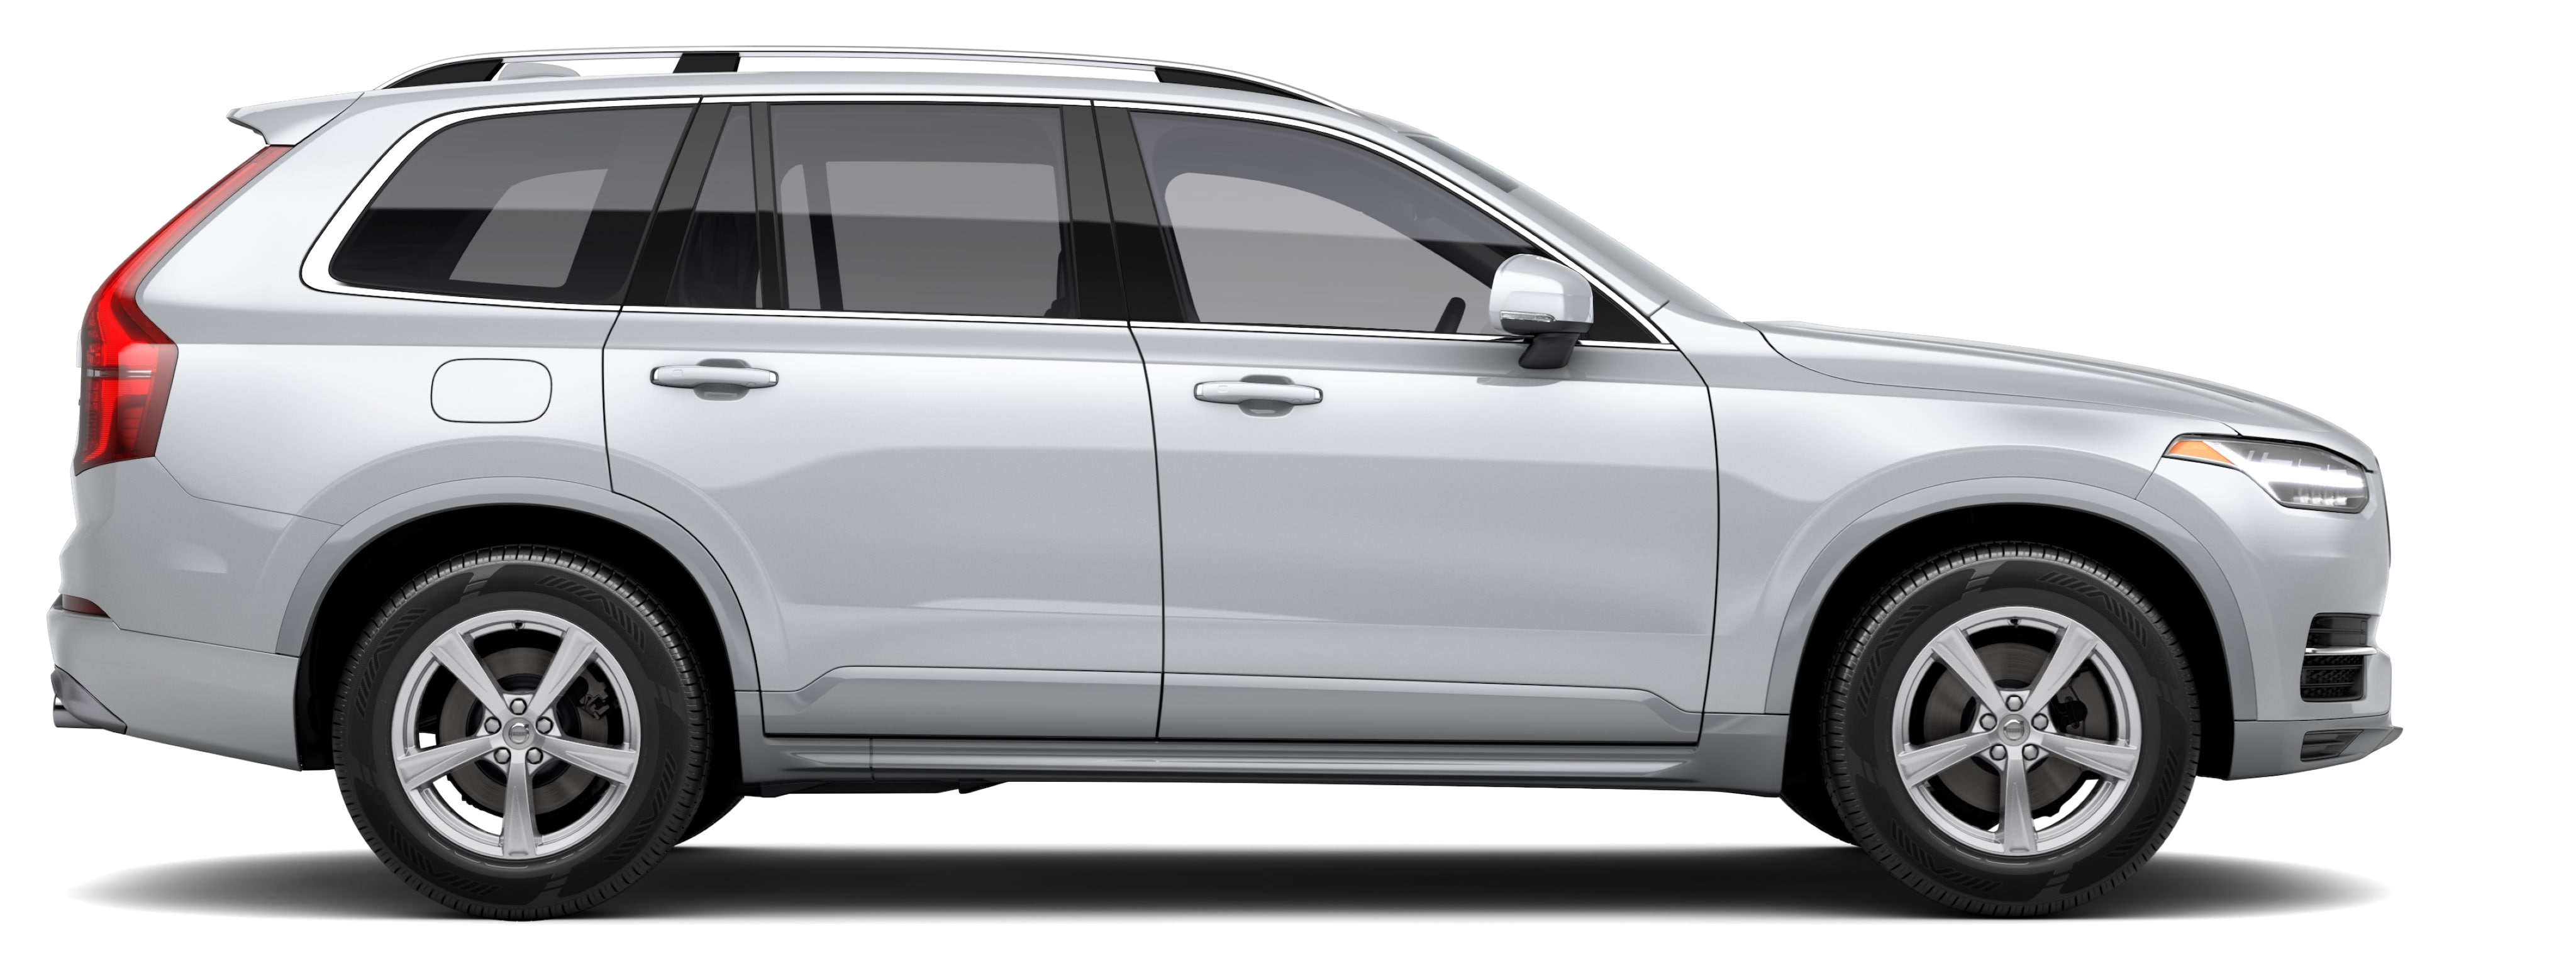 review lease deals volvo cars look inscription ma first side